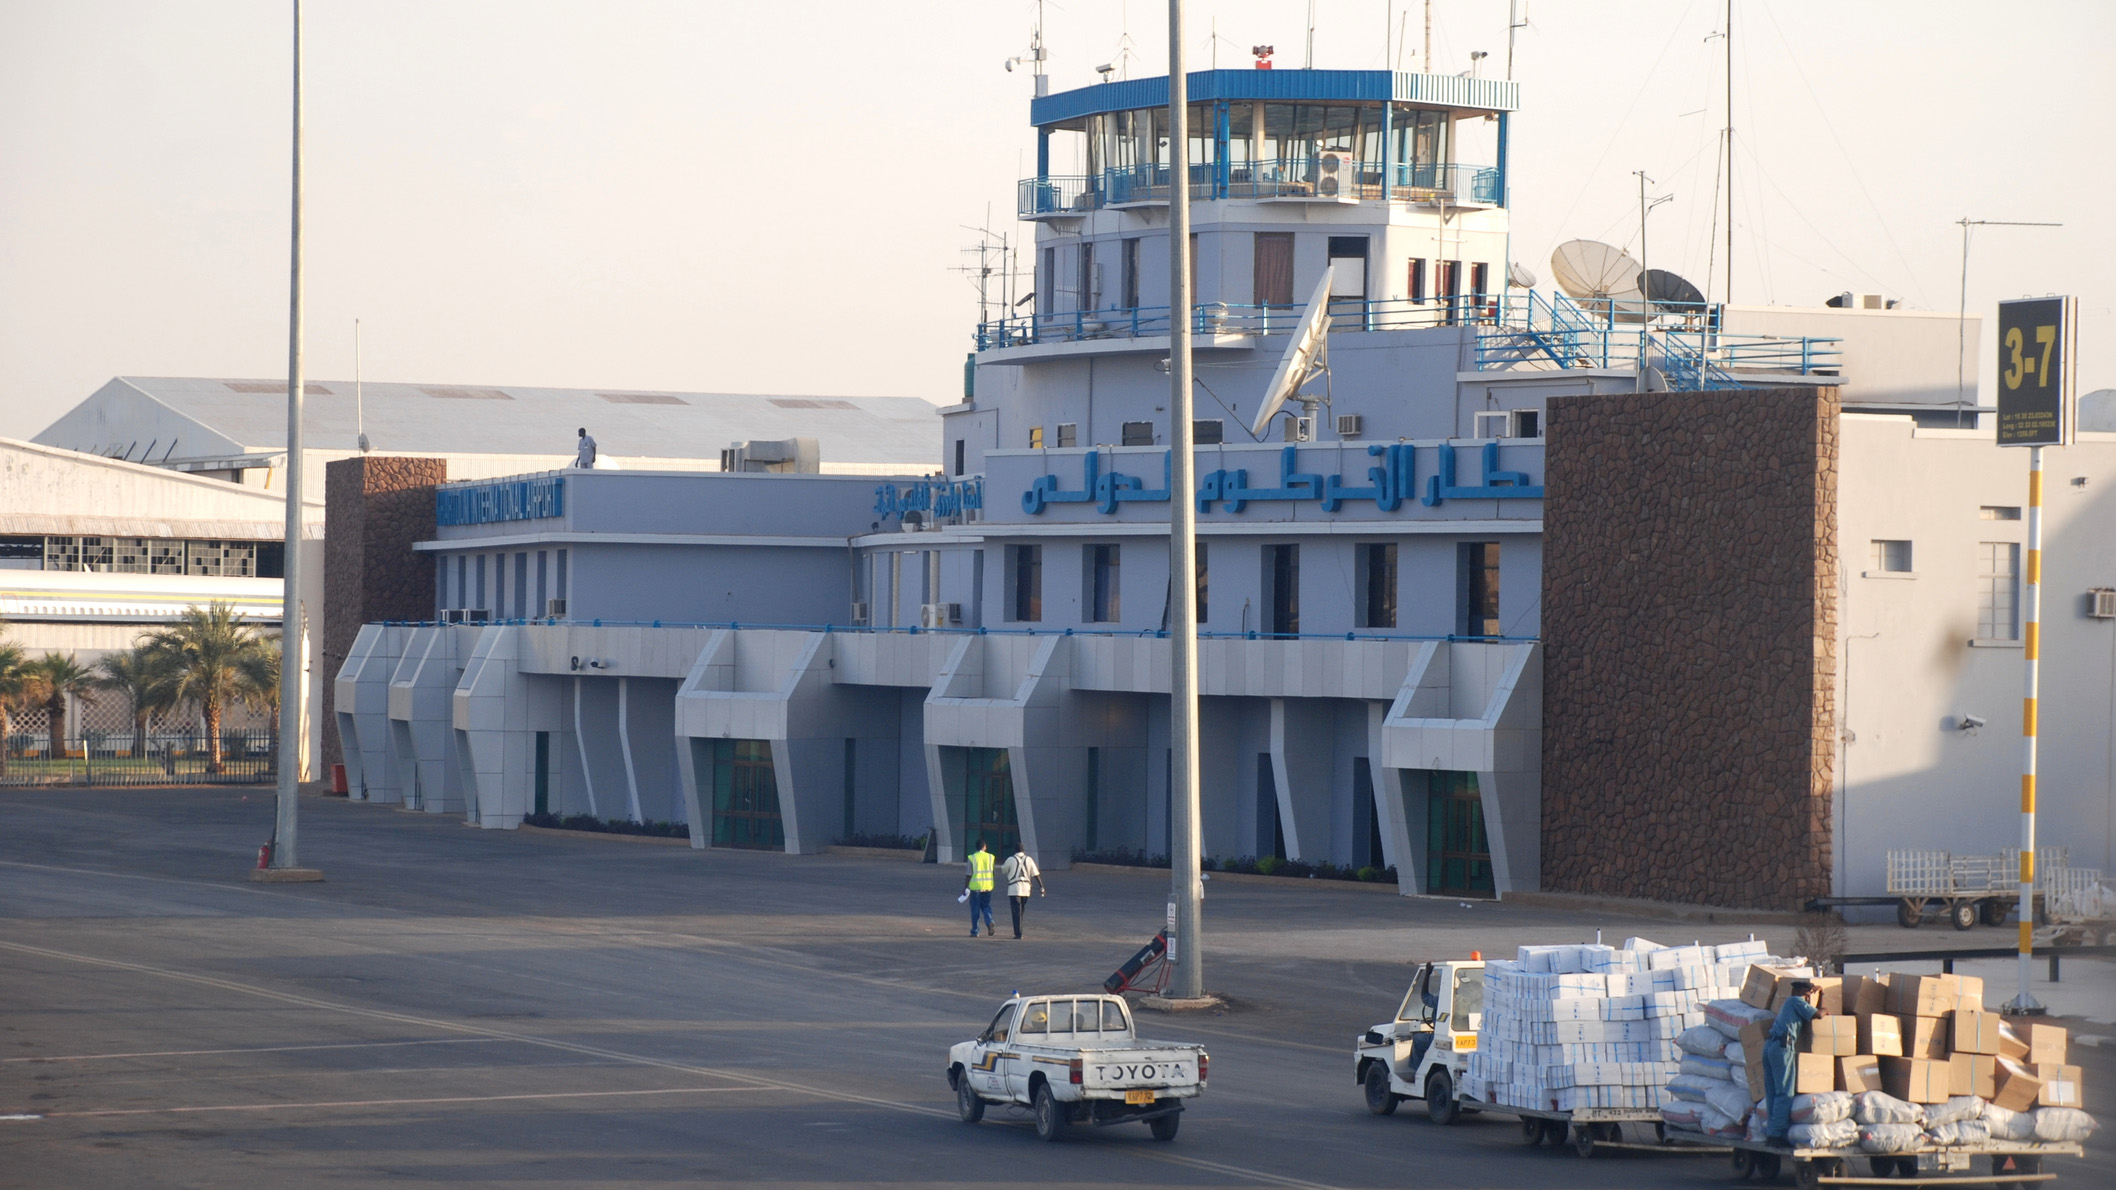 The plane had to land at Khartoum International Airport after the cat got into the cockpit.